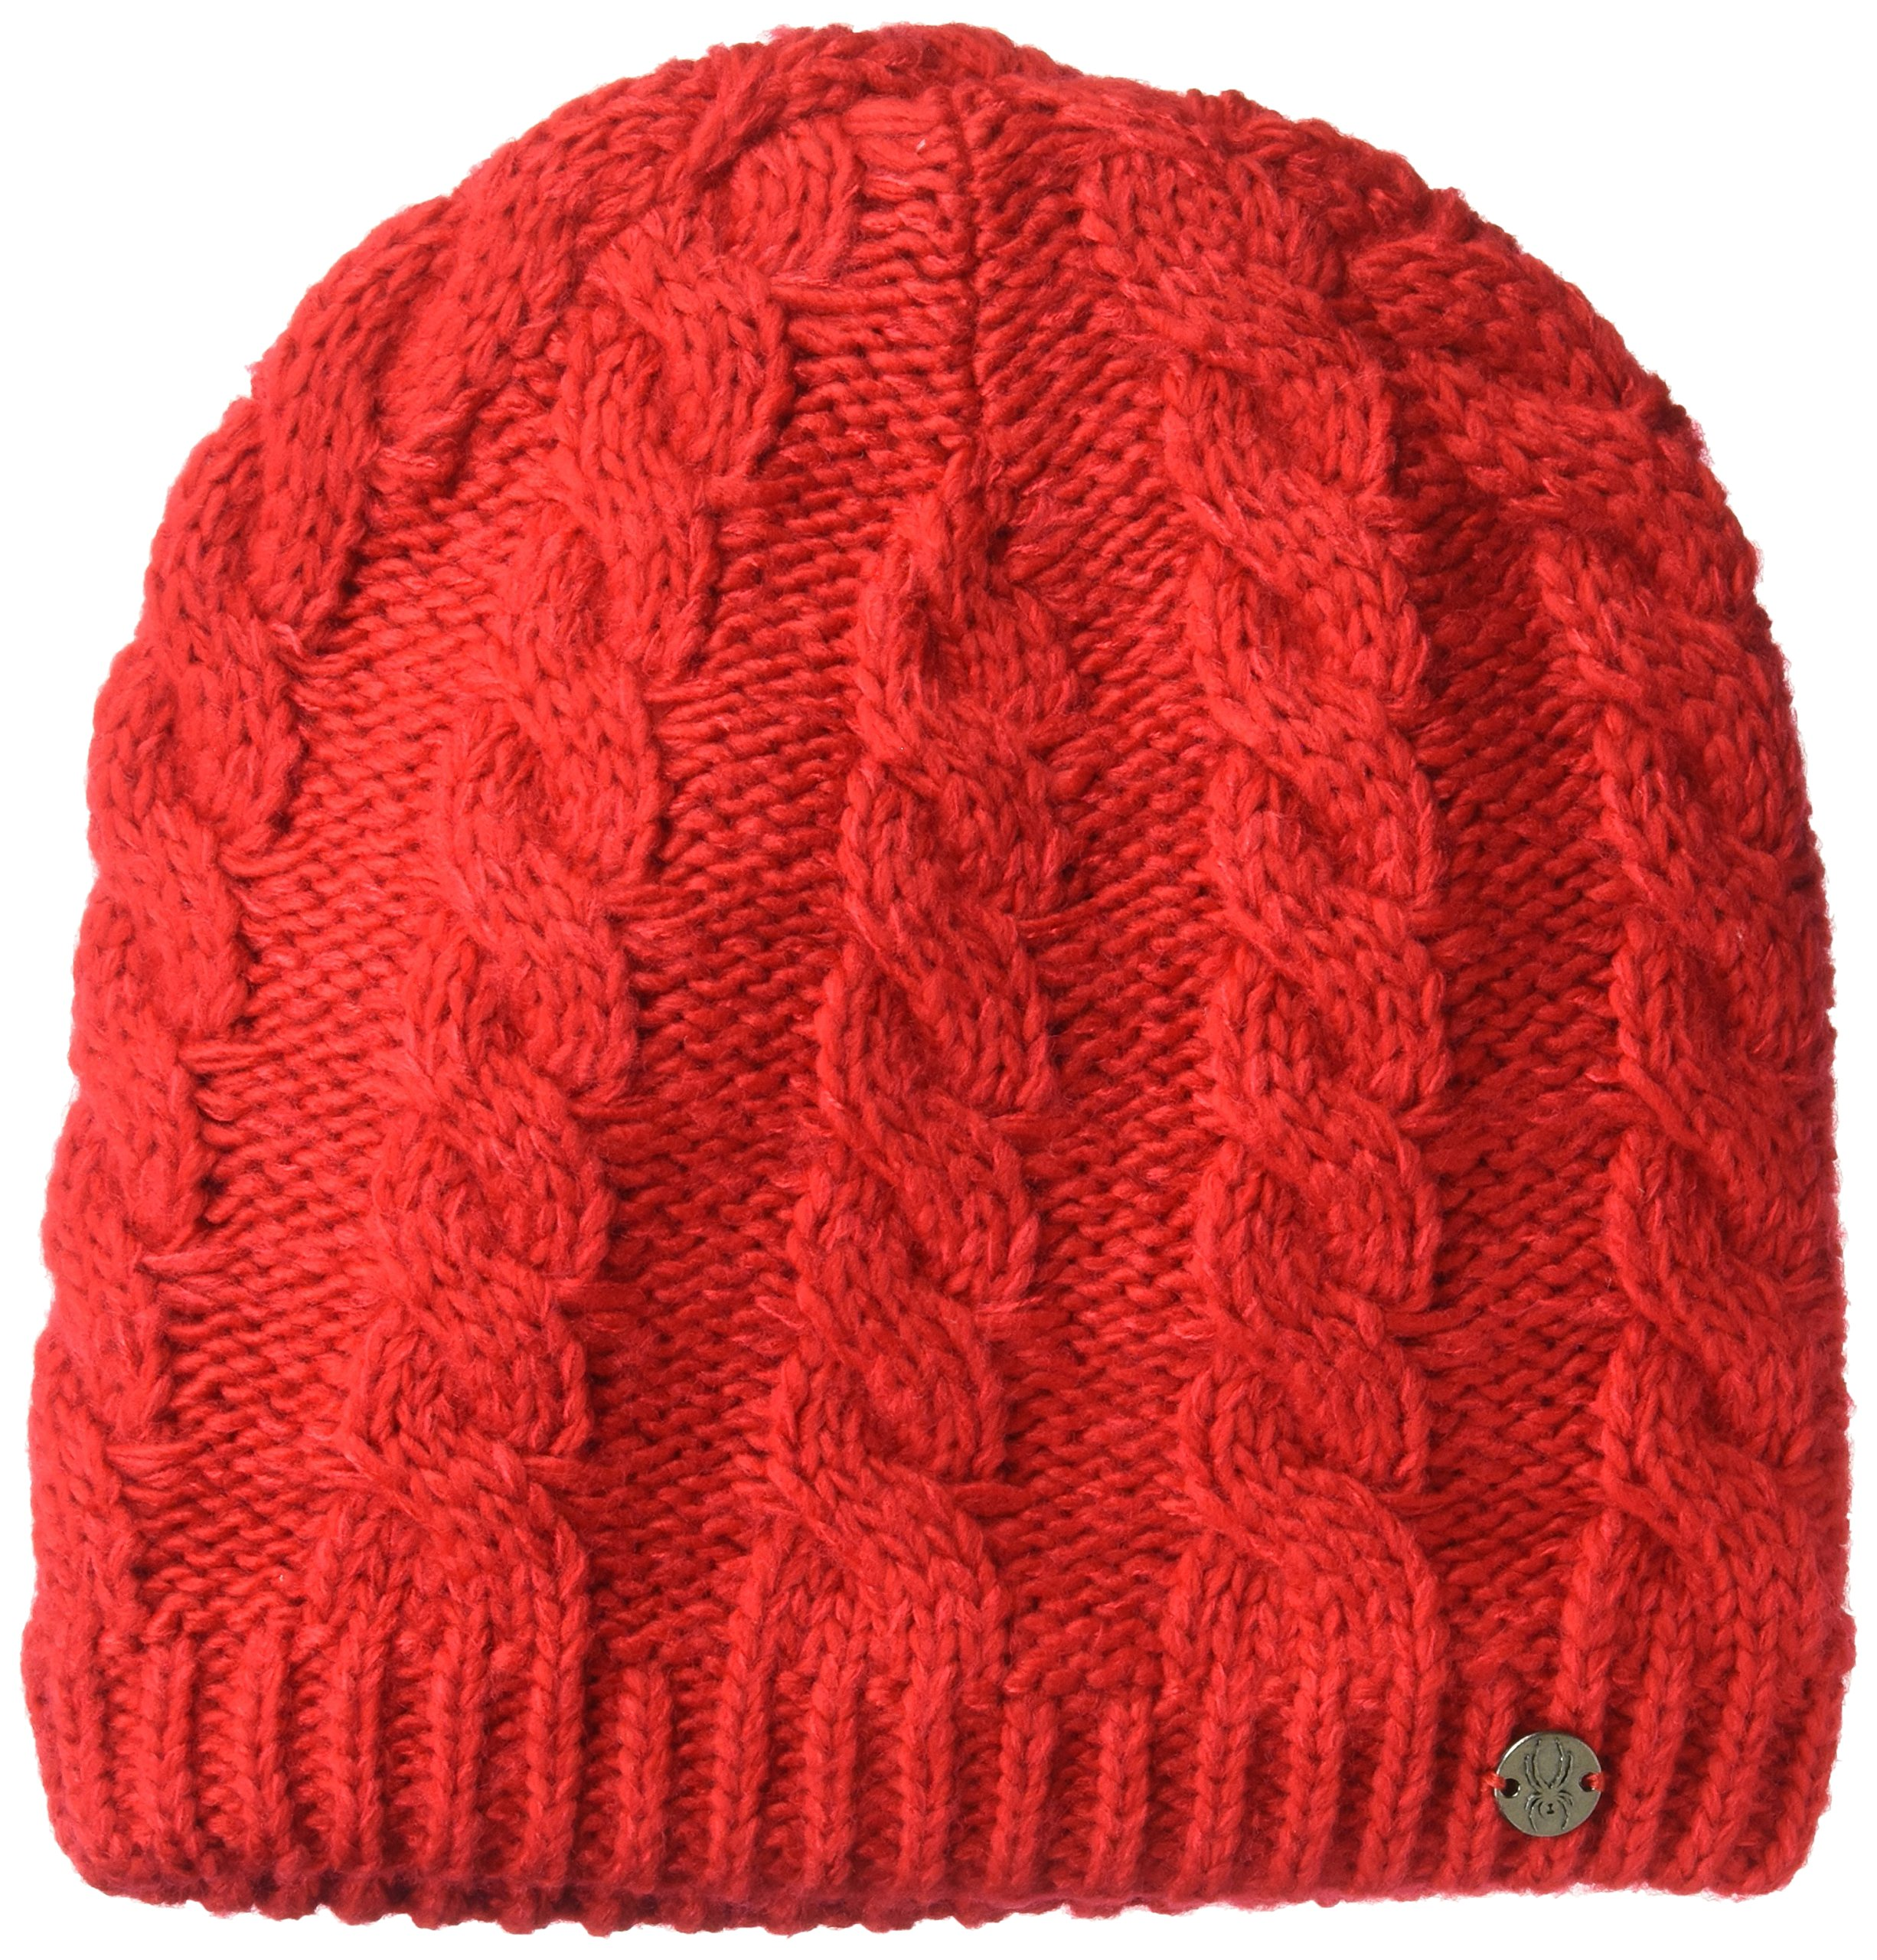 Spyder Women's Endless Hat, Red, One Size by Spyder